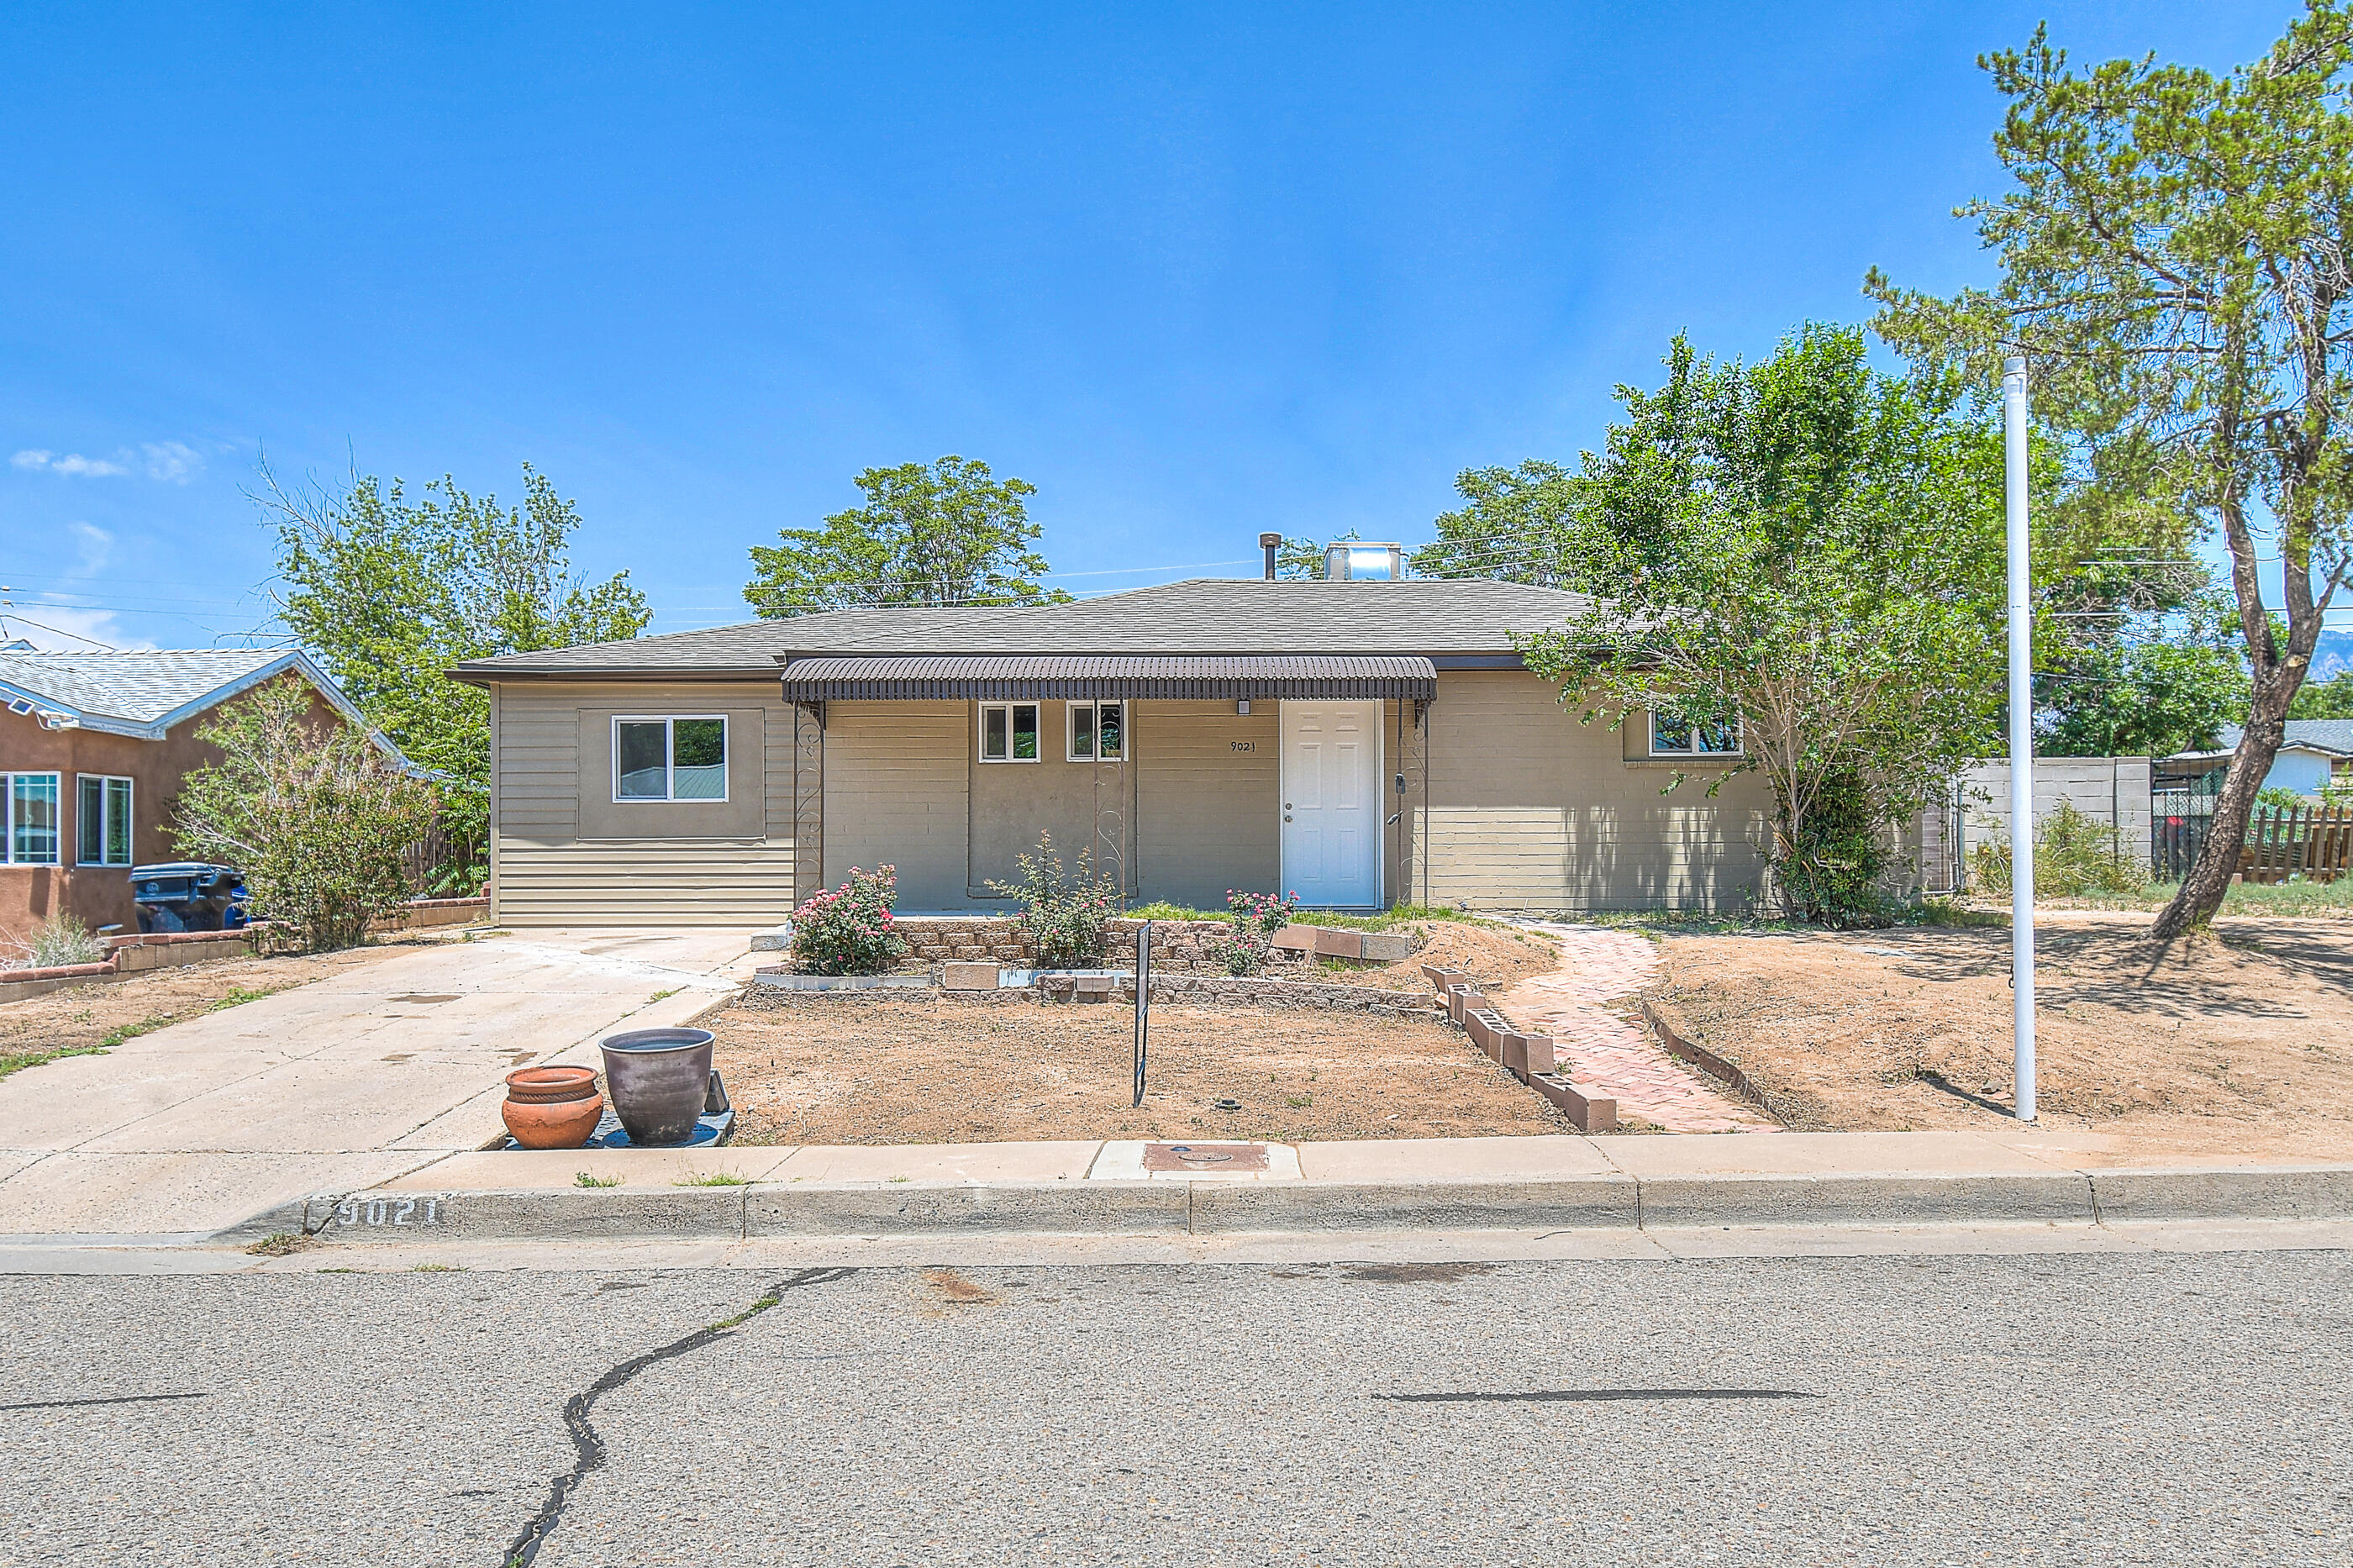 Updated throughout!  This NE Gem is move in ready and has been tastefully updated.  No stone was left unturned with new roof, new swamp cooler, brand new flooring, fresh paint and so much more!!   The kitchen has beautiful cabinets with brand new stainless appliances.  Bathroom has beautiful custom tile backsplash and new vanity.  Living room has a built in wooden book case and opens up into the lovely kitchen.